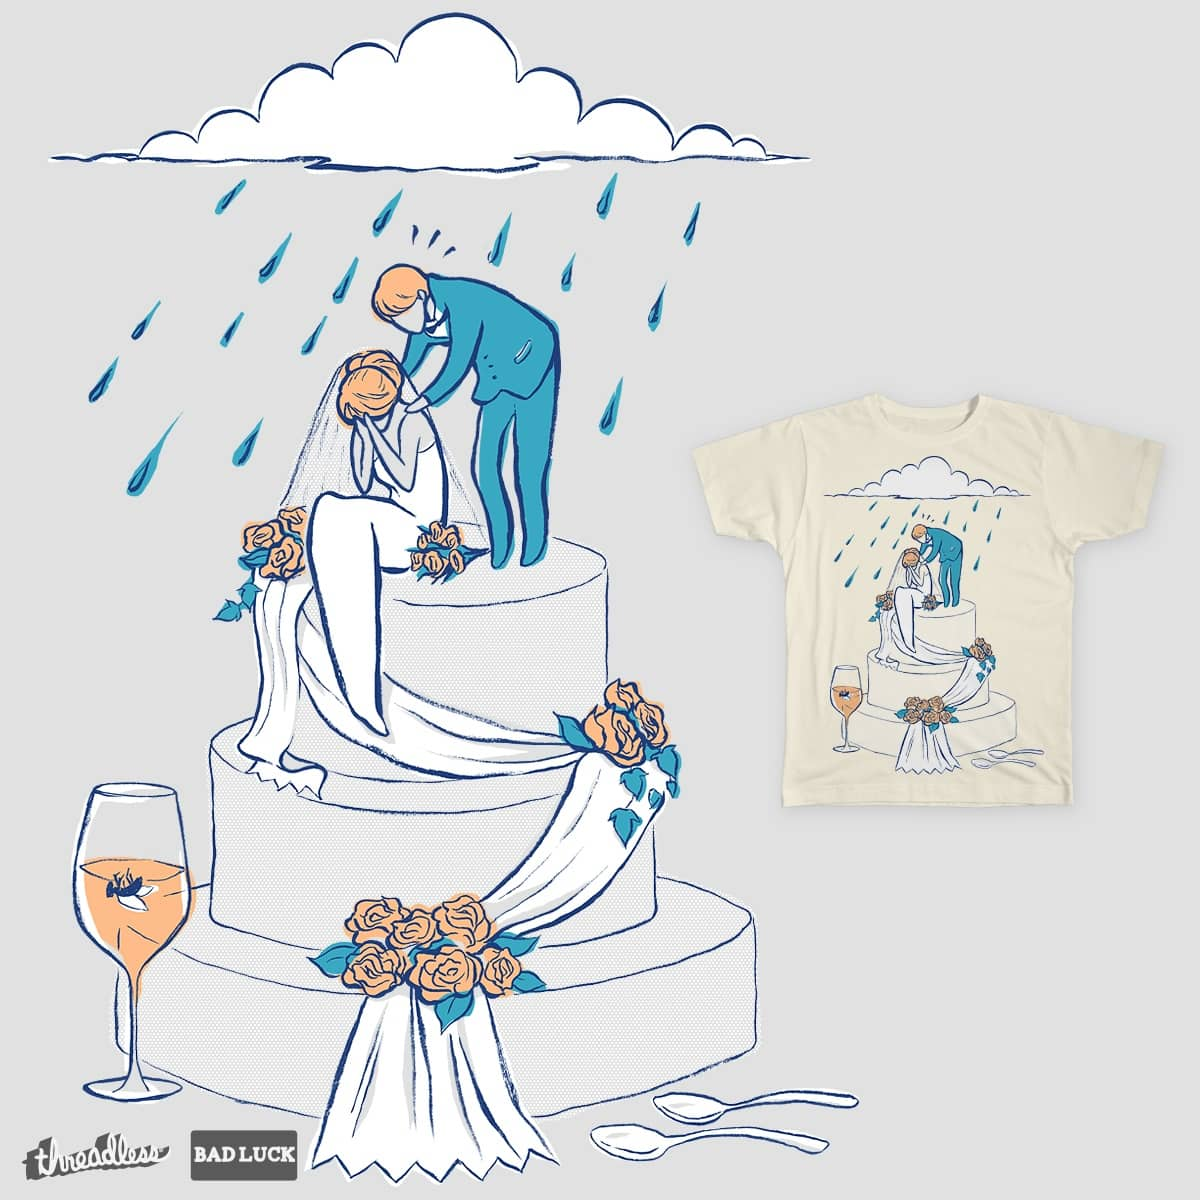 Score its like rain on your wedding day by sloobeast on threadless its like rain on your wedding day by sloobeast on threadless junglespirit Image collections